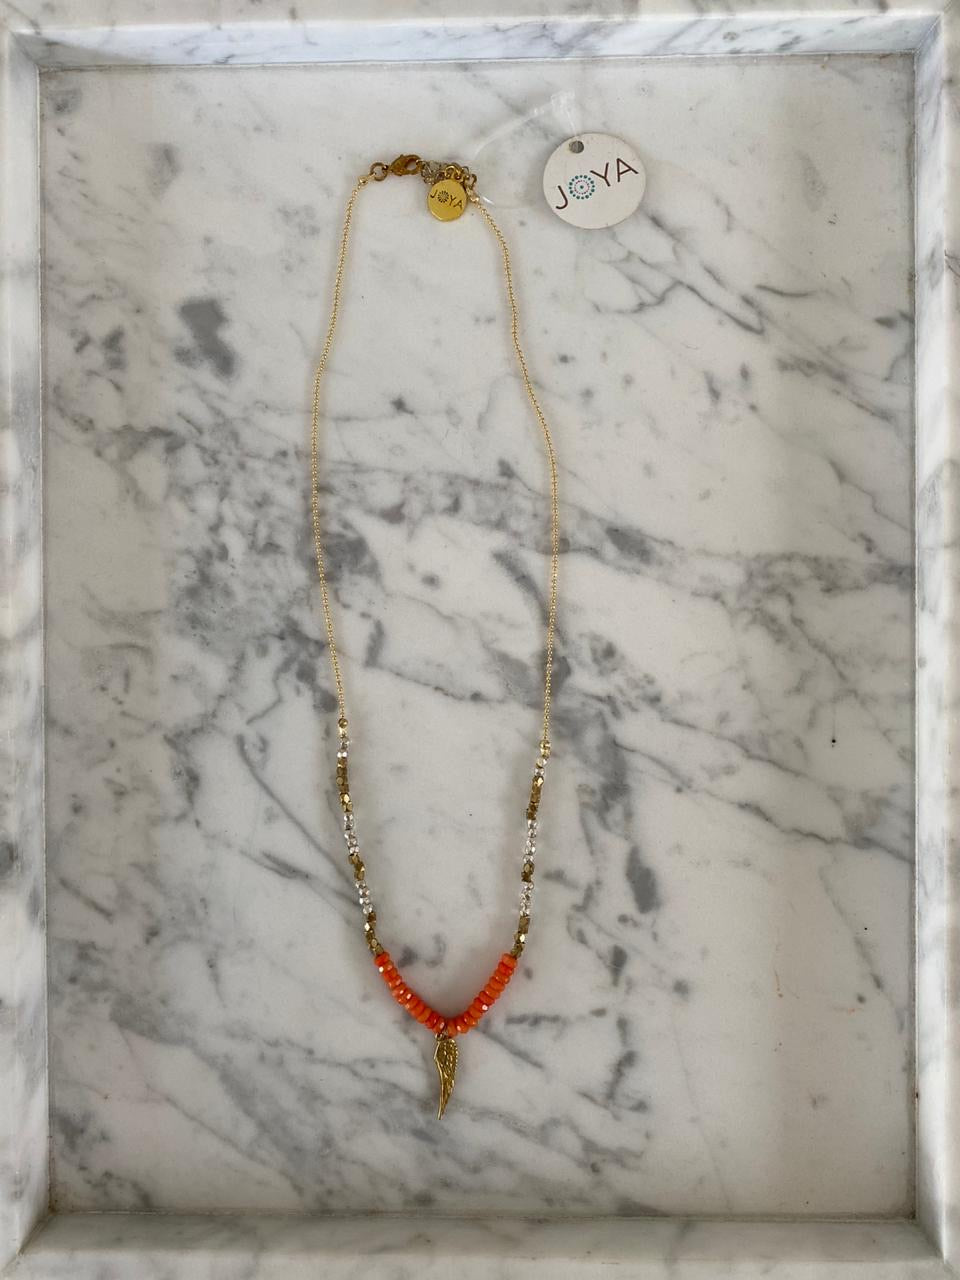 Joya gold beaded necklace with angel wing pendant